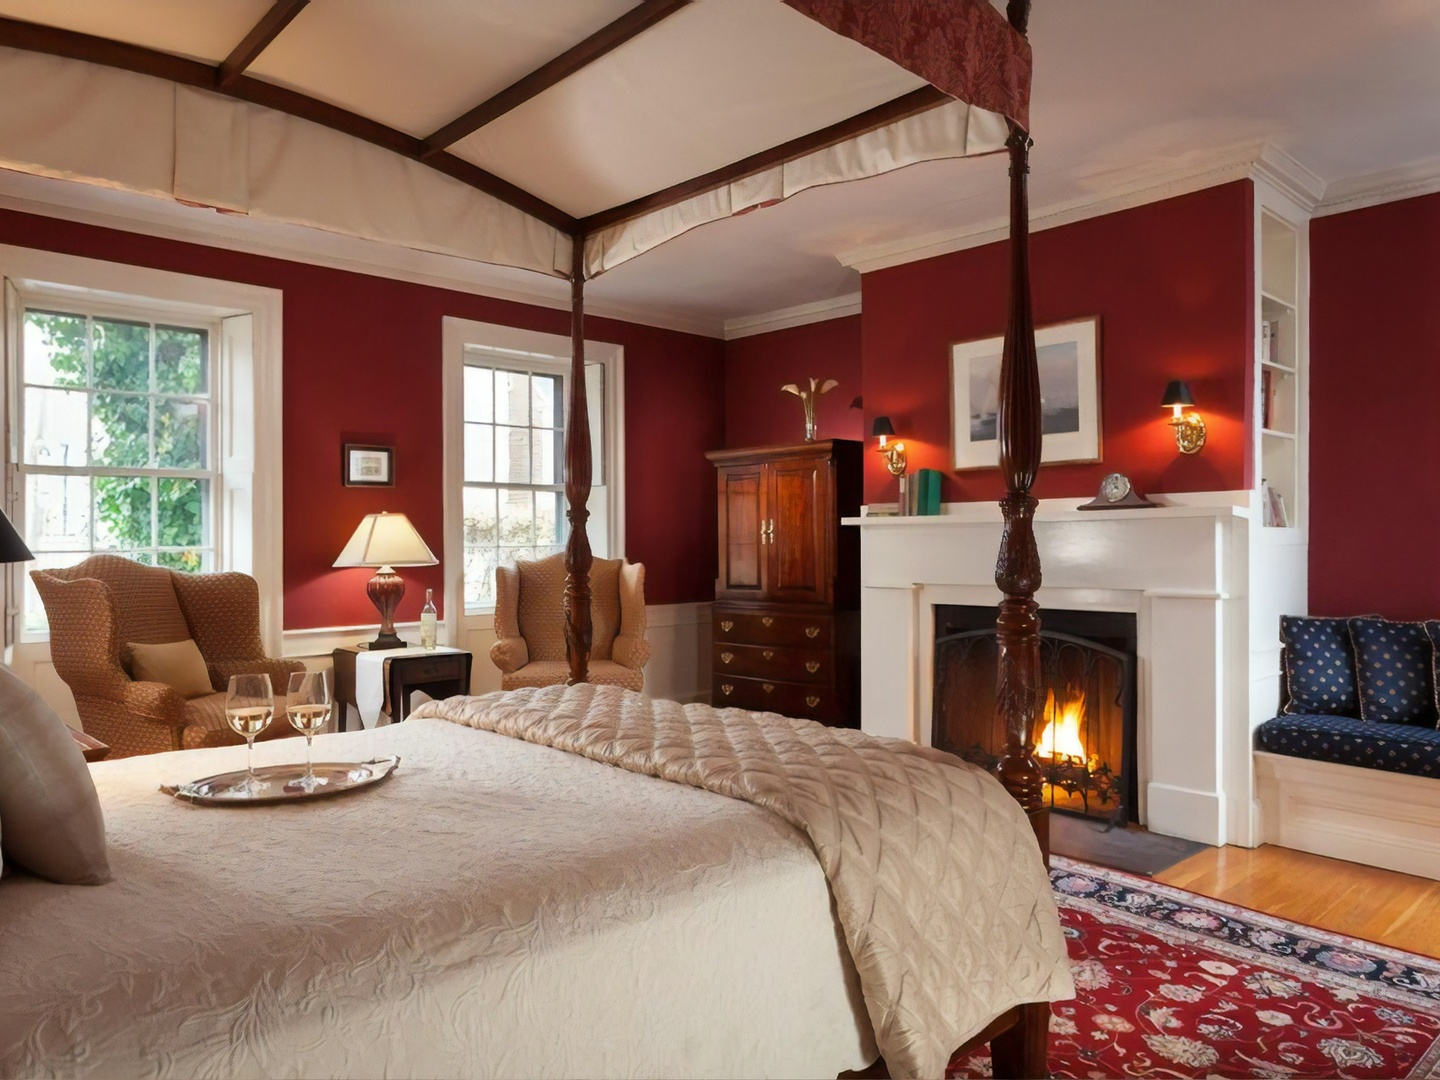 A living room with a bed and a fireplace at Harbor Light Inn.